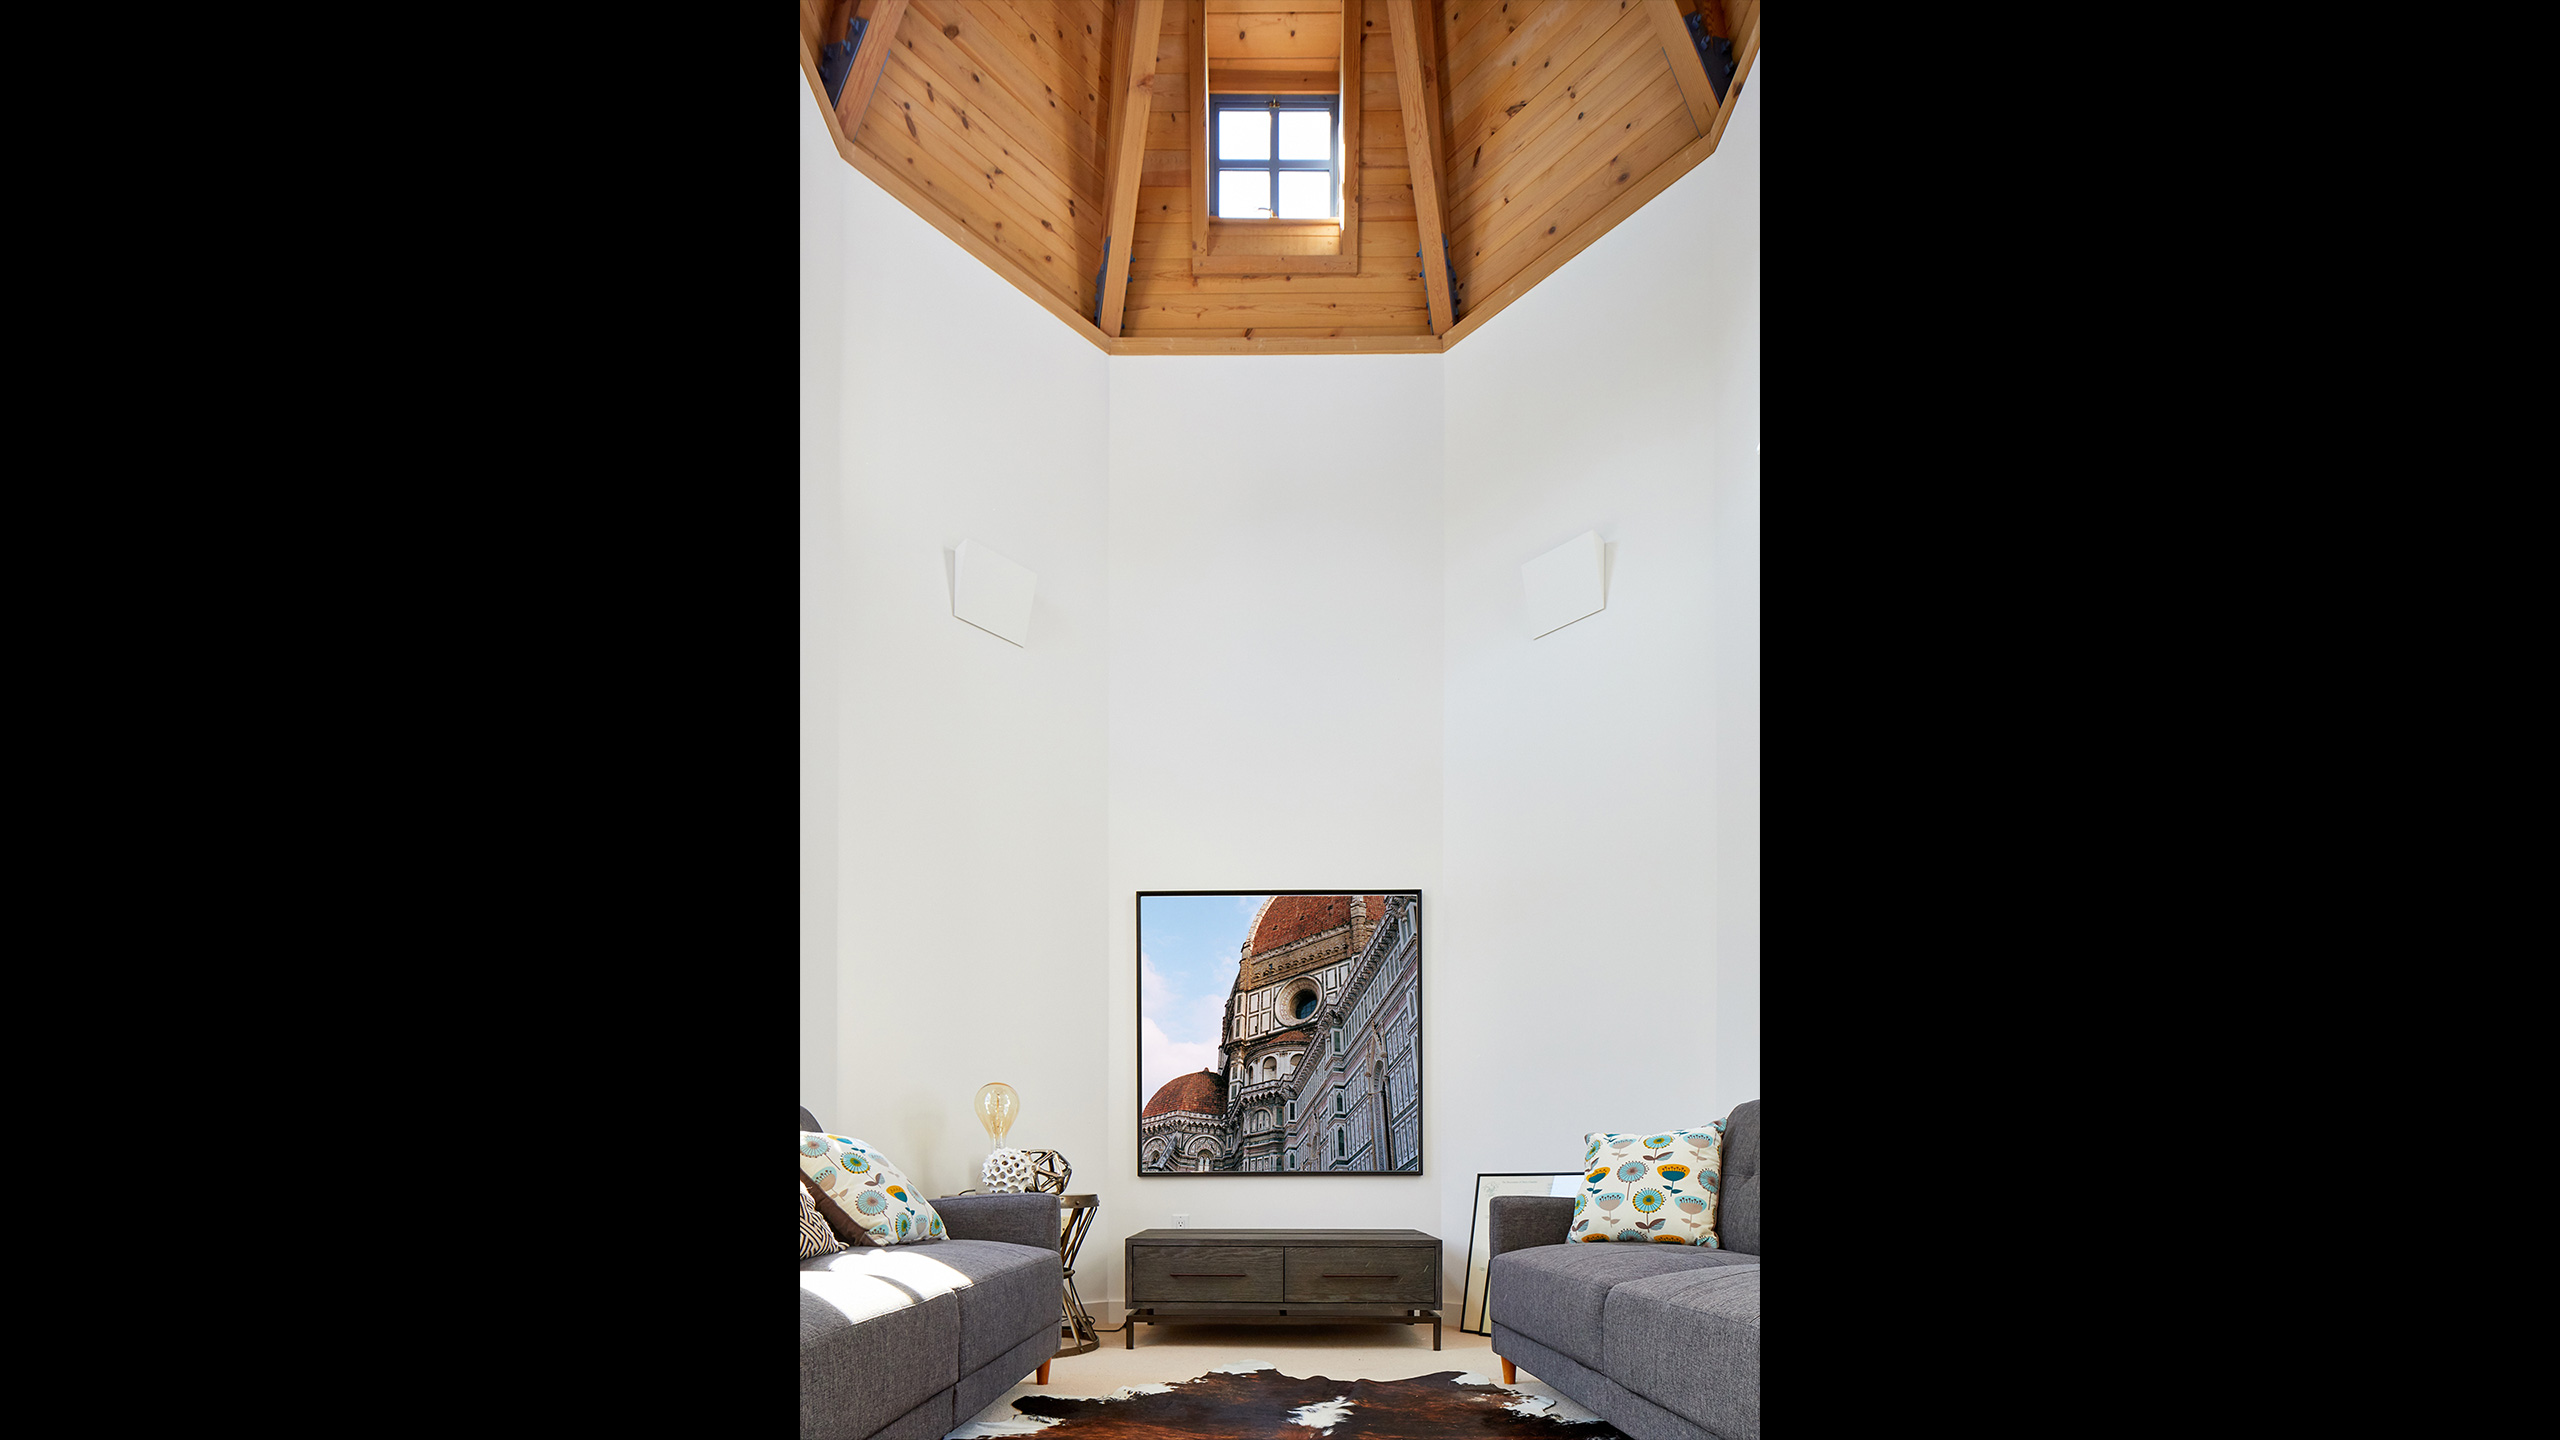 Napa-Farmhouse-round-tower-with-wood-ceiling